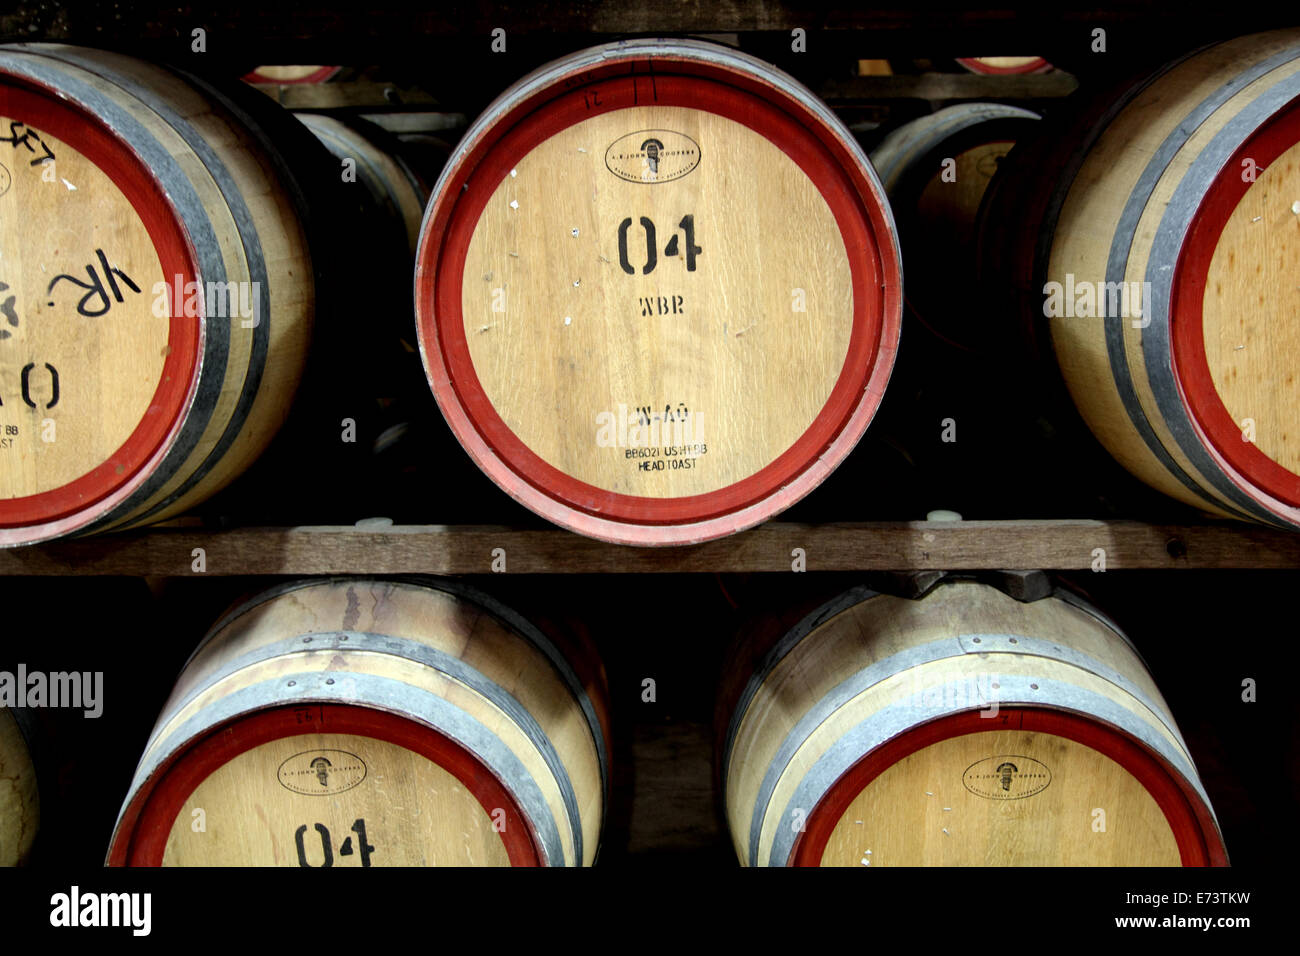 Wine maturing in casks in the Barossa Valley of Australia - Stock Image